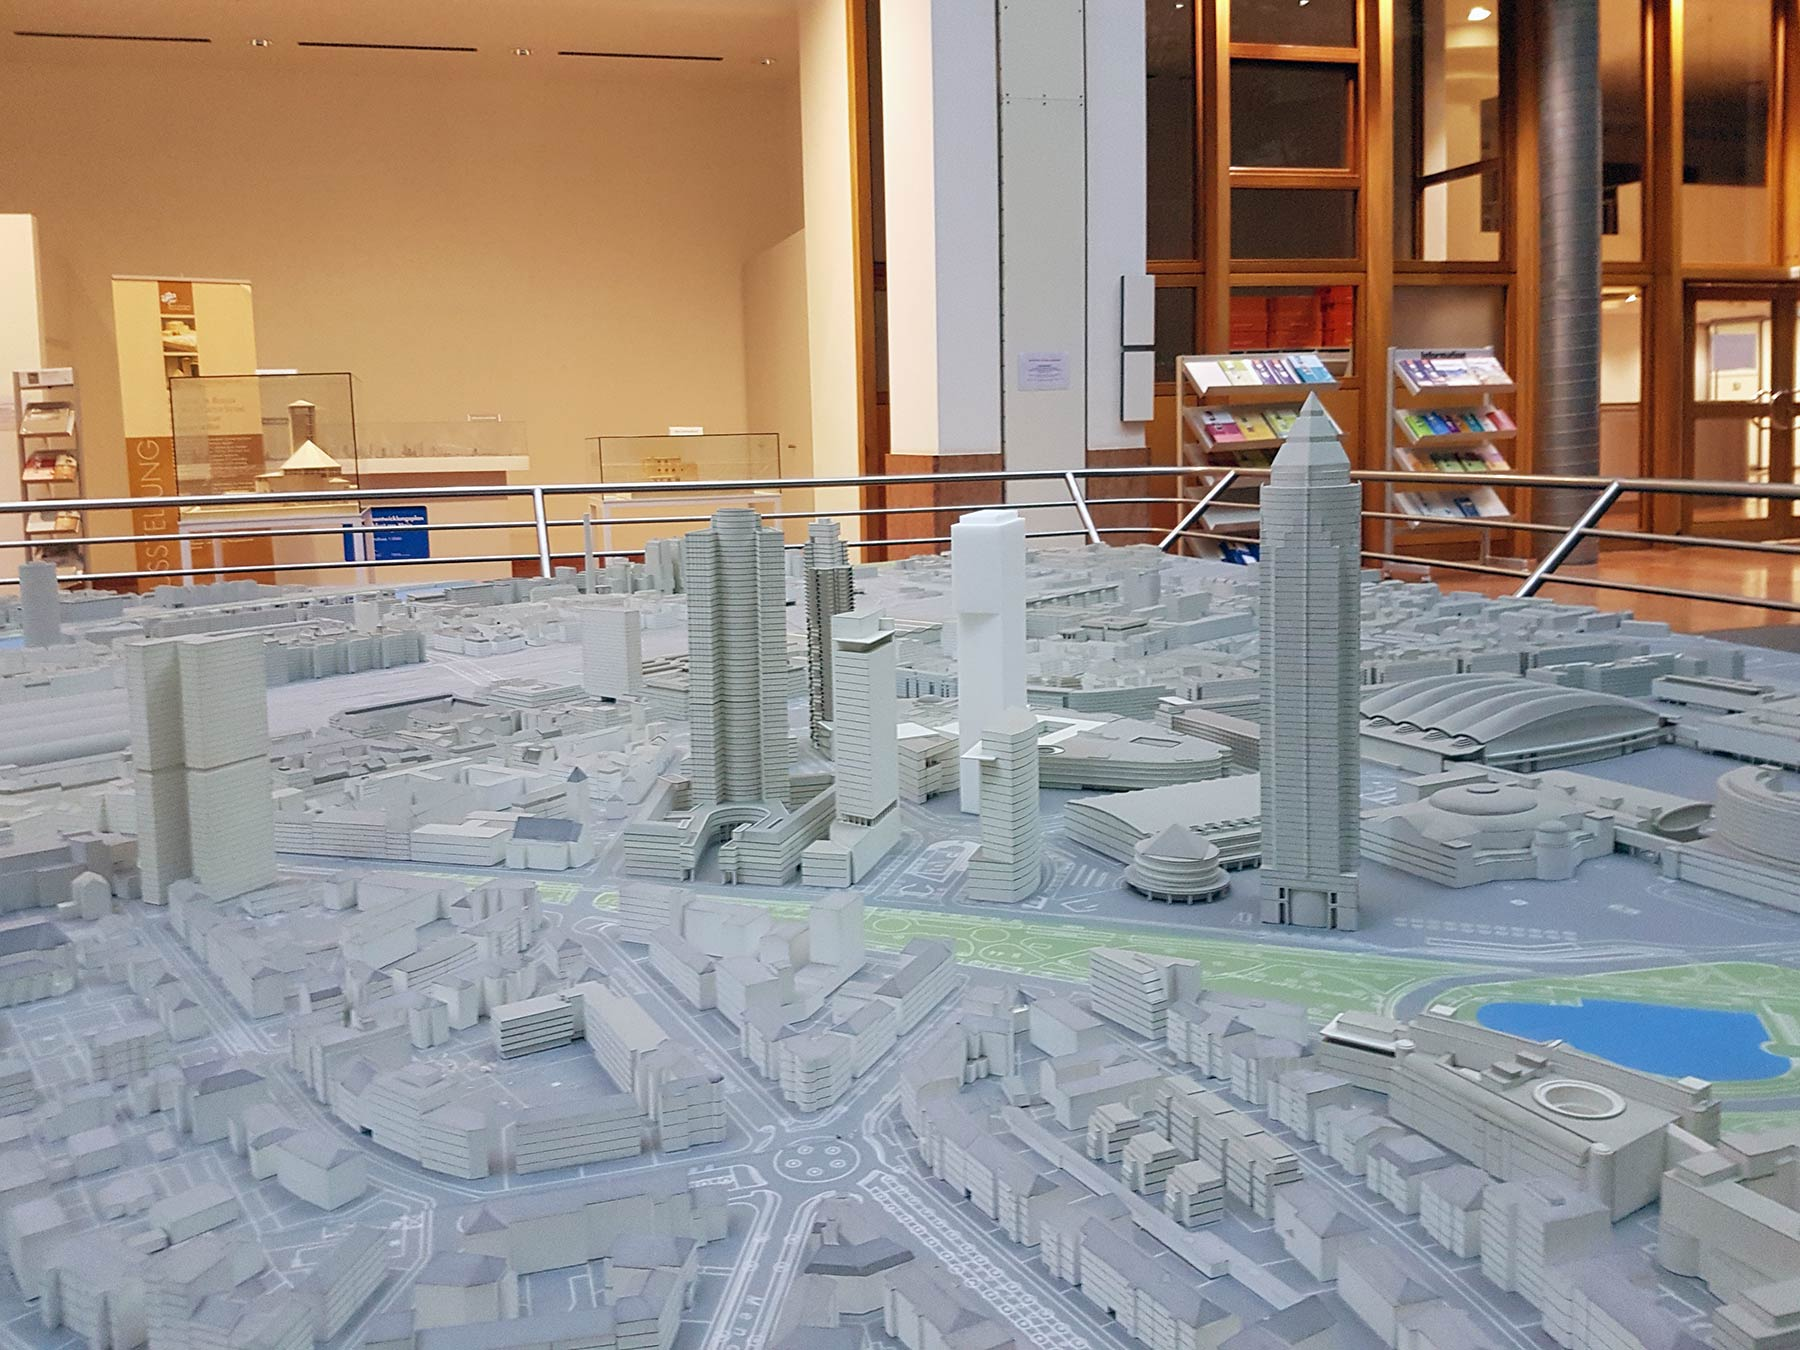 City Model Frankfurt in the Planning Office of the City of Frankfurt